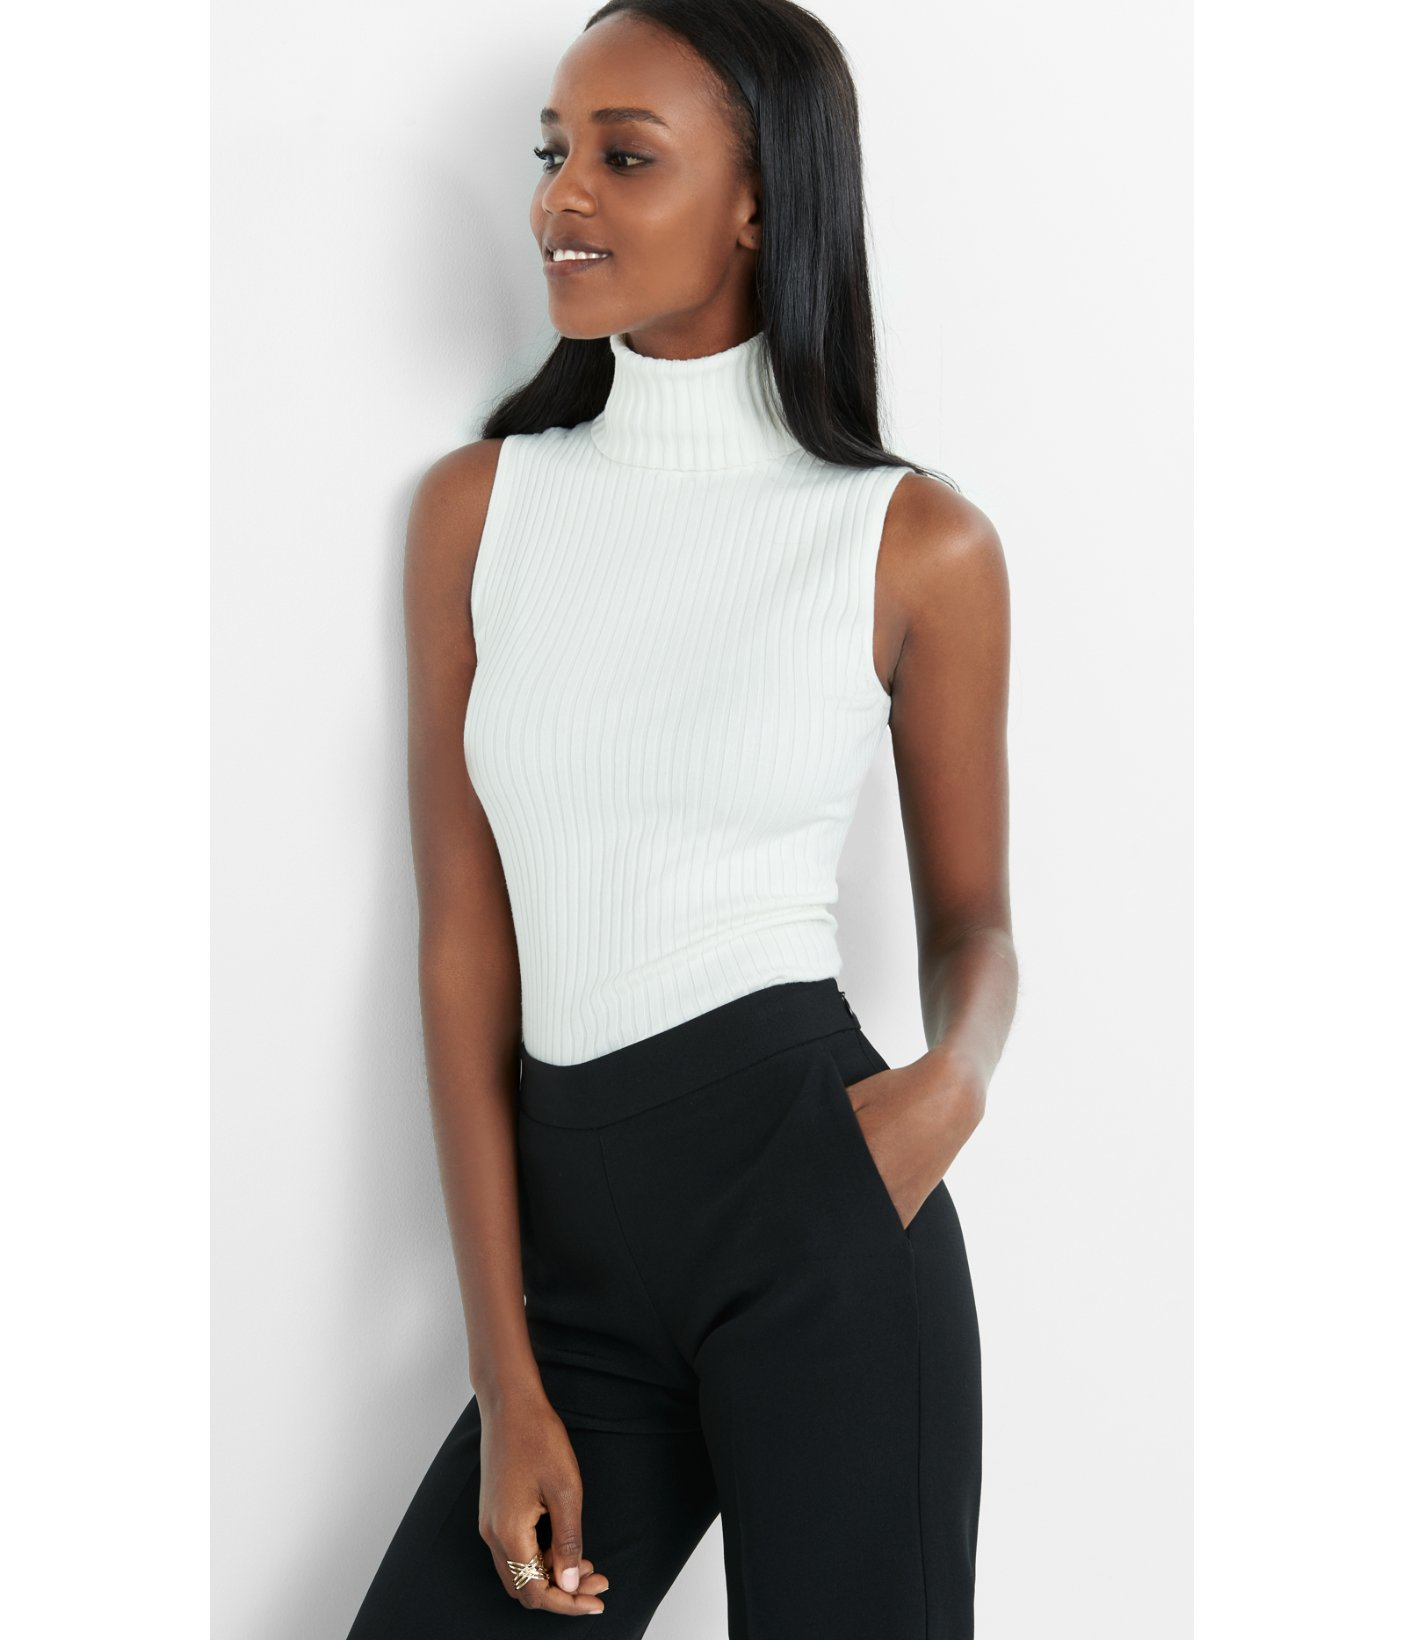 feab1b7bfdea Lyst - Express Sleeveless Ribbed Turtleneck Sweater in White